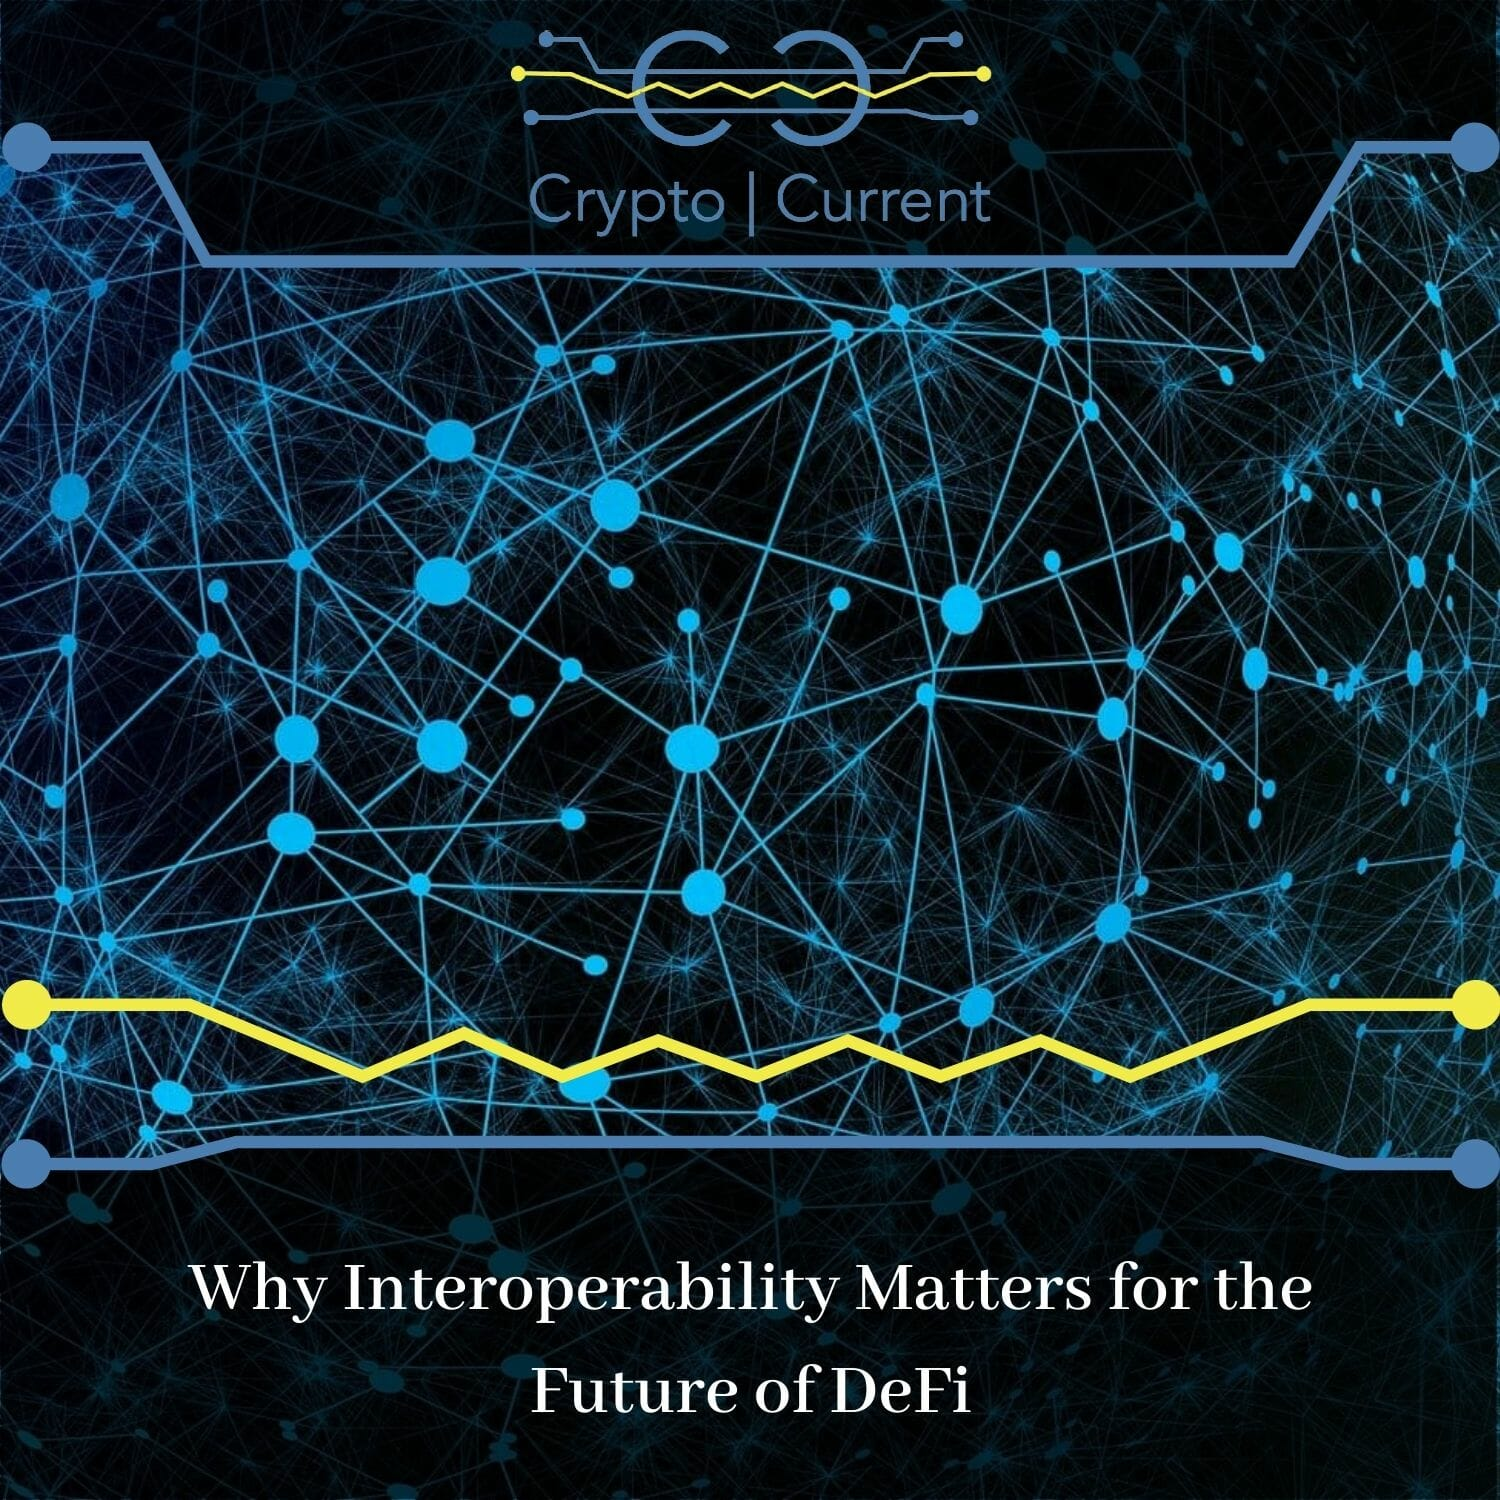 Why Interoperability Matters for the Future of DeFi